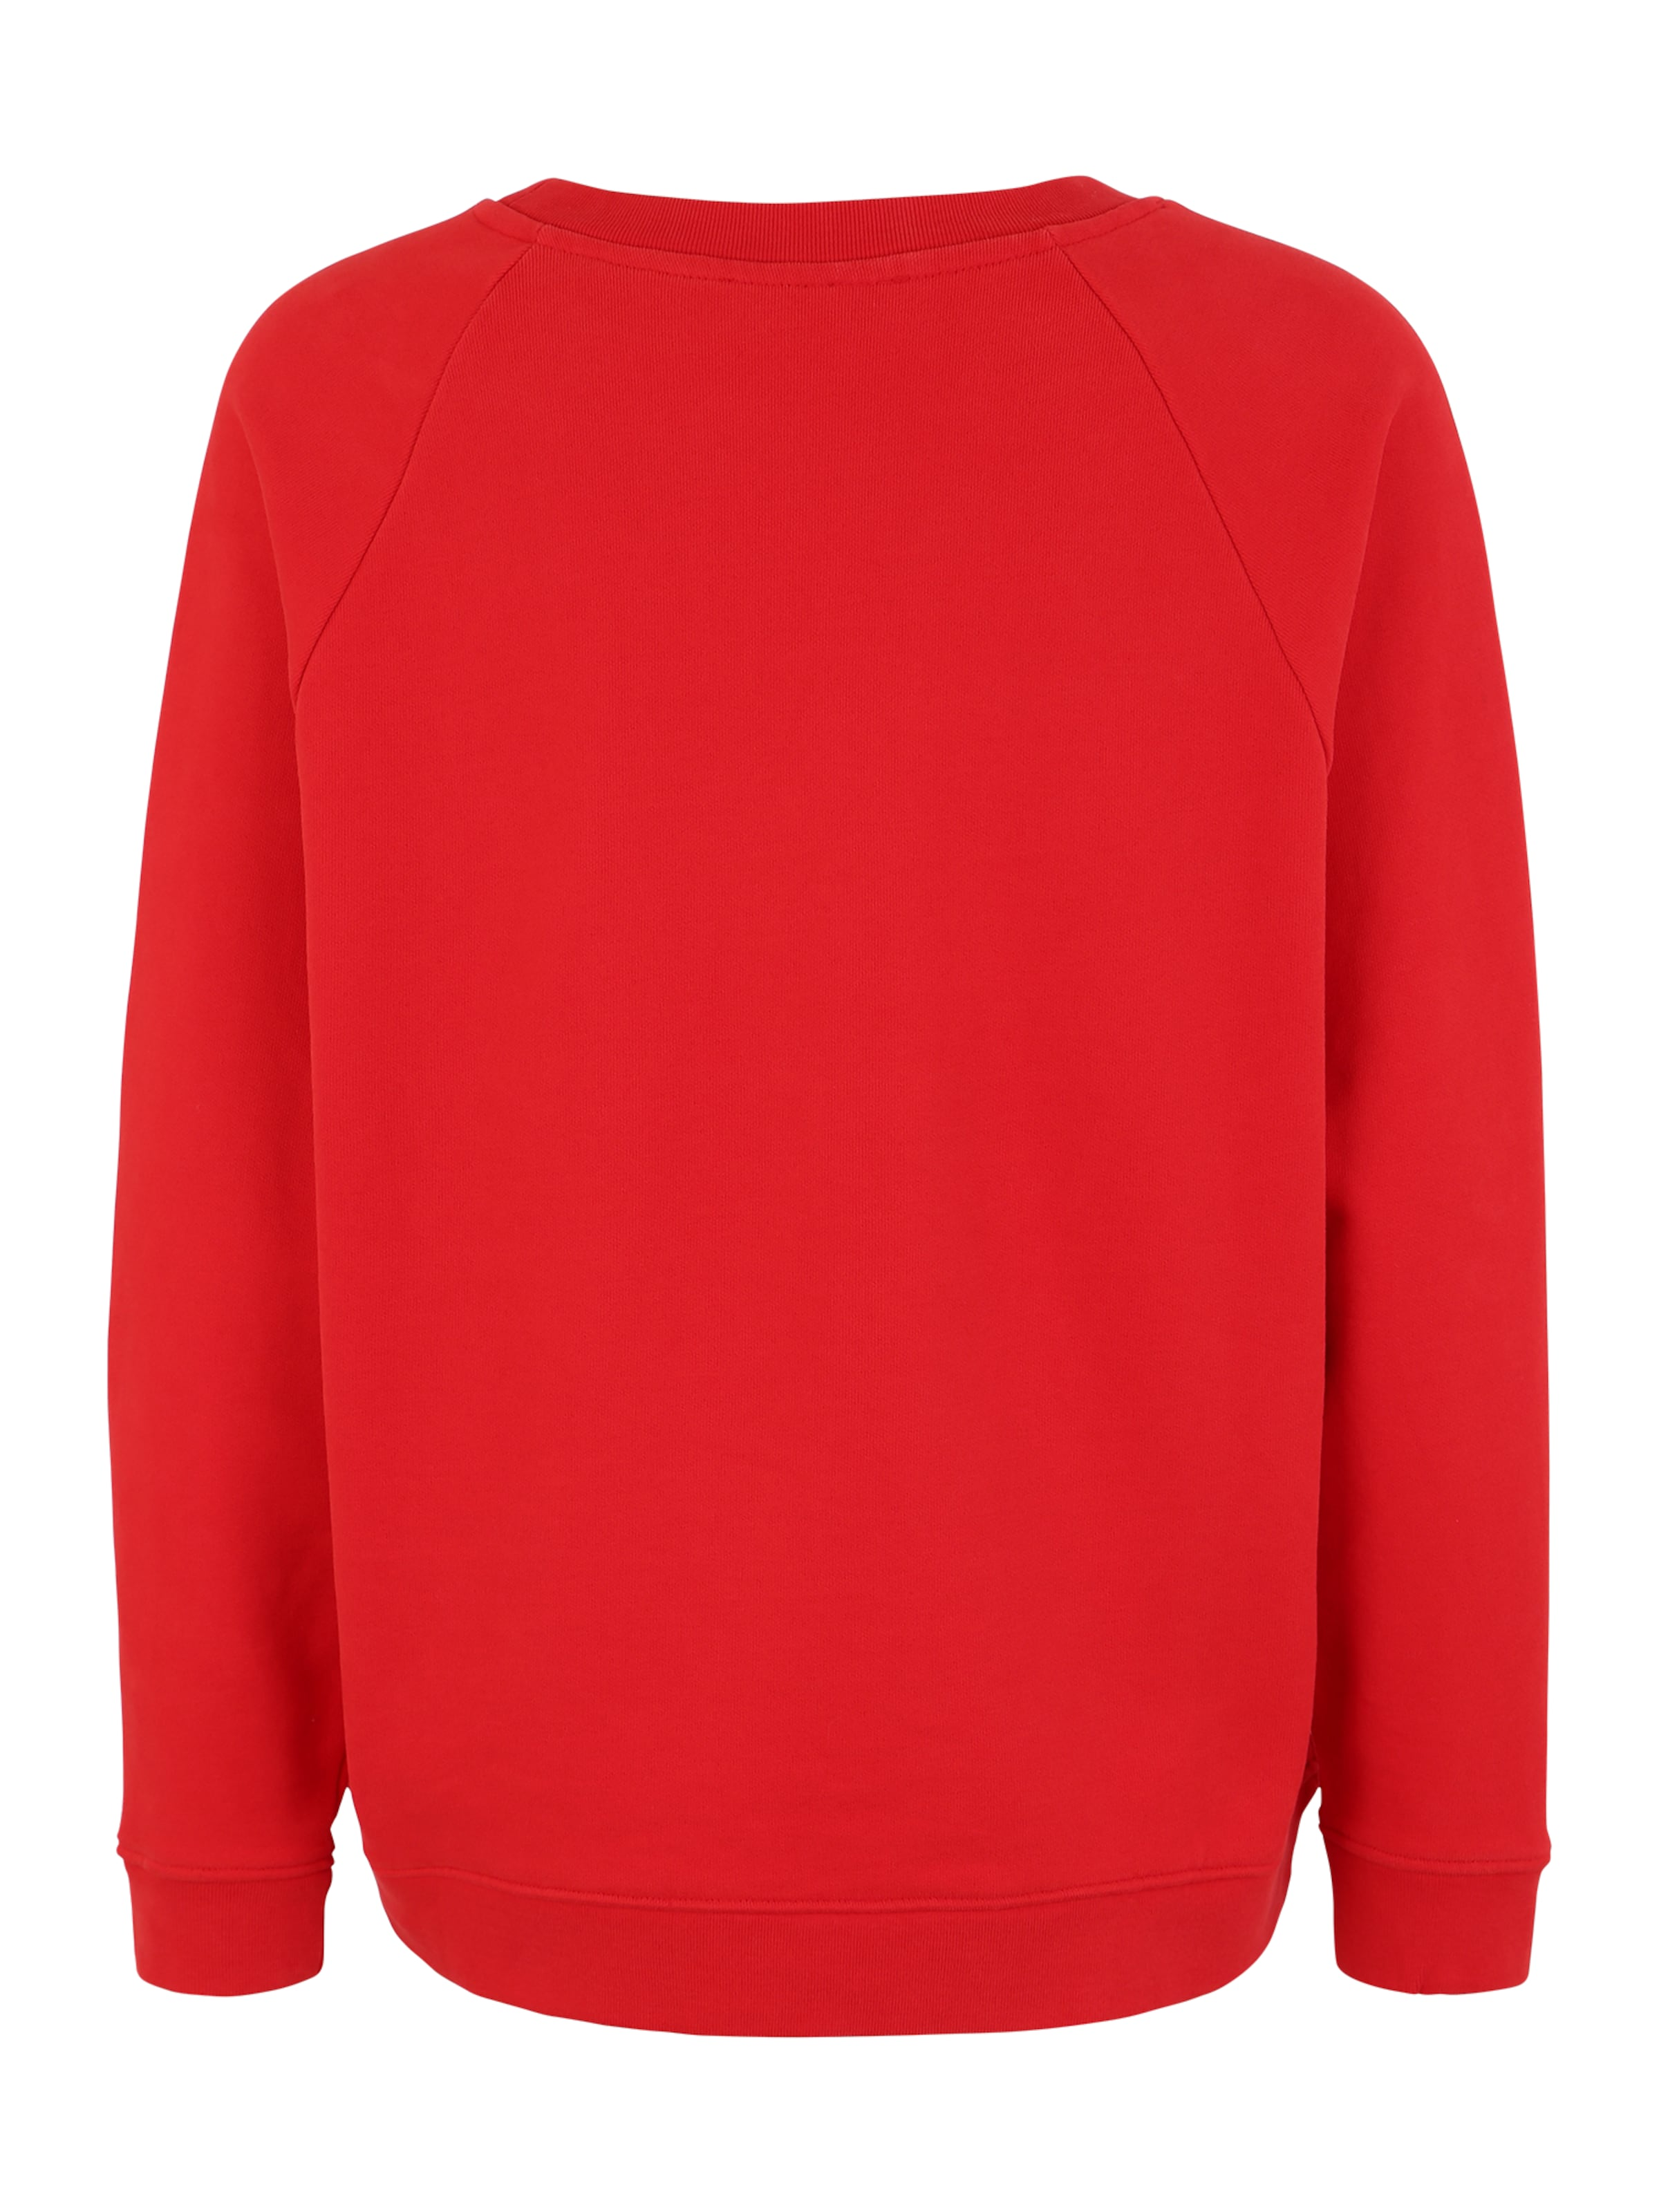 Sweatshirt Graphic' Plus 'relaxed Rot In Levi's® qLSUGMpzV